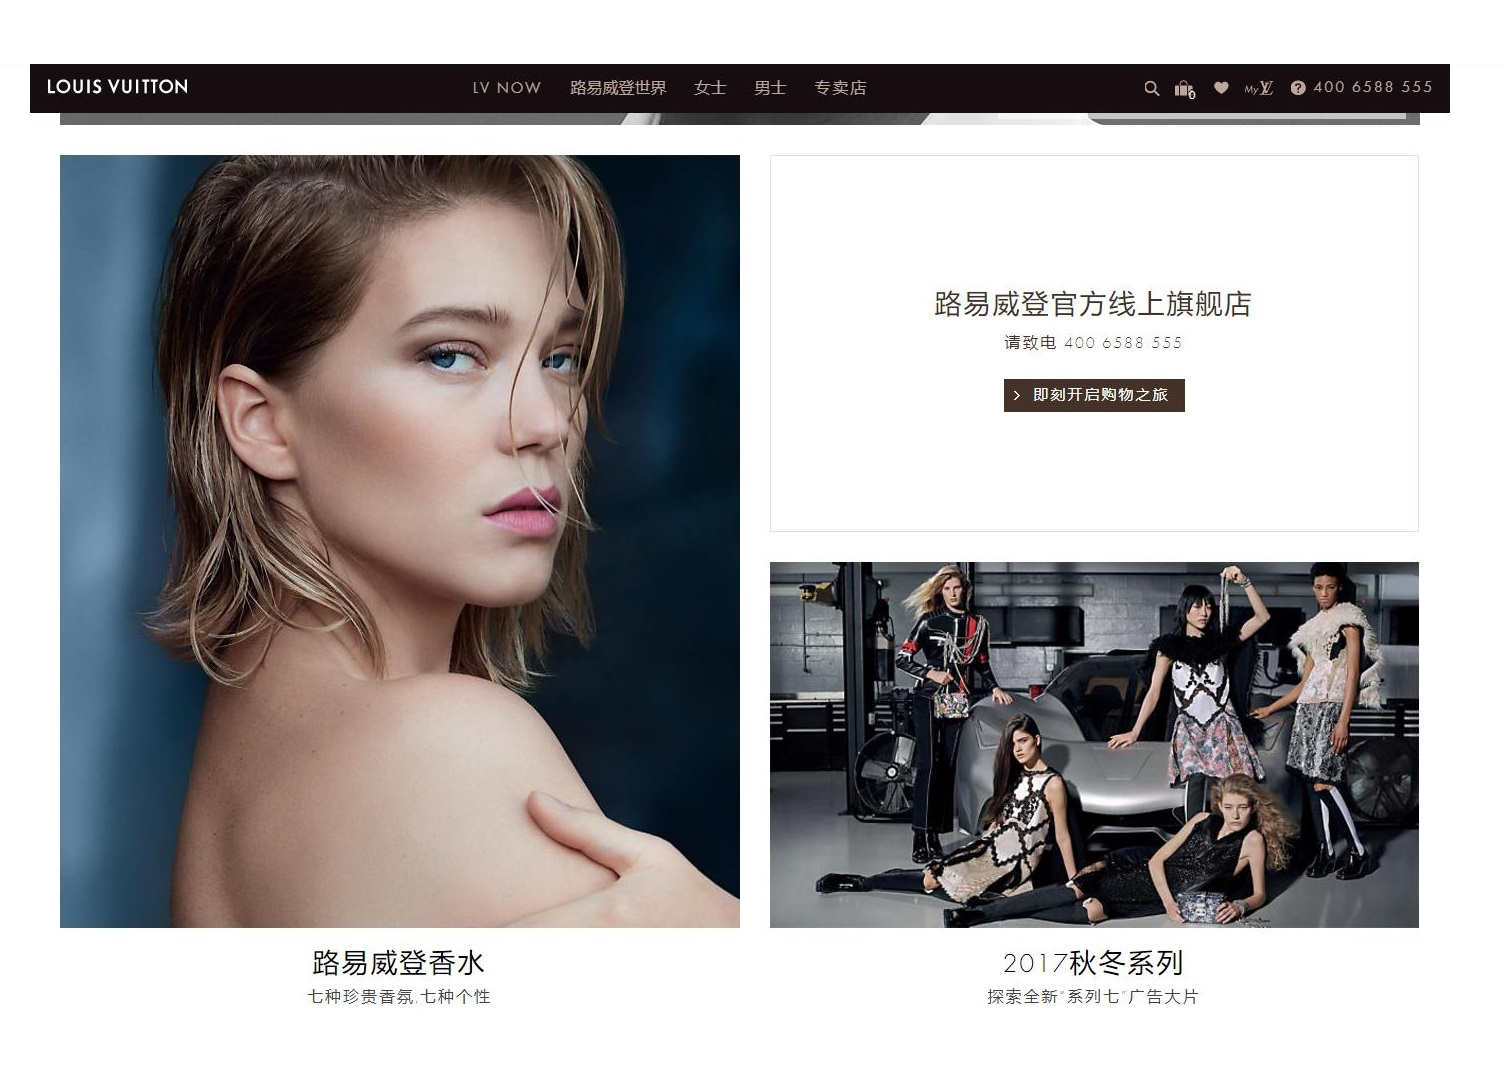 Ecommerce Louis Vuitton